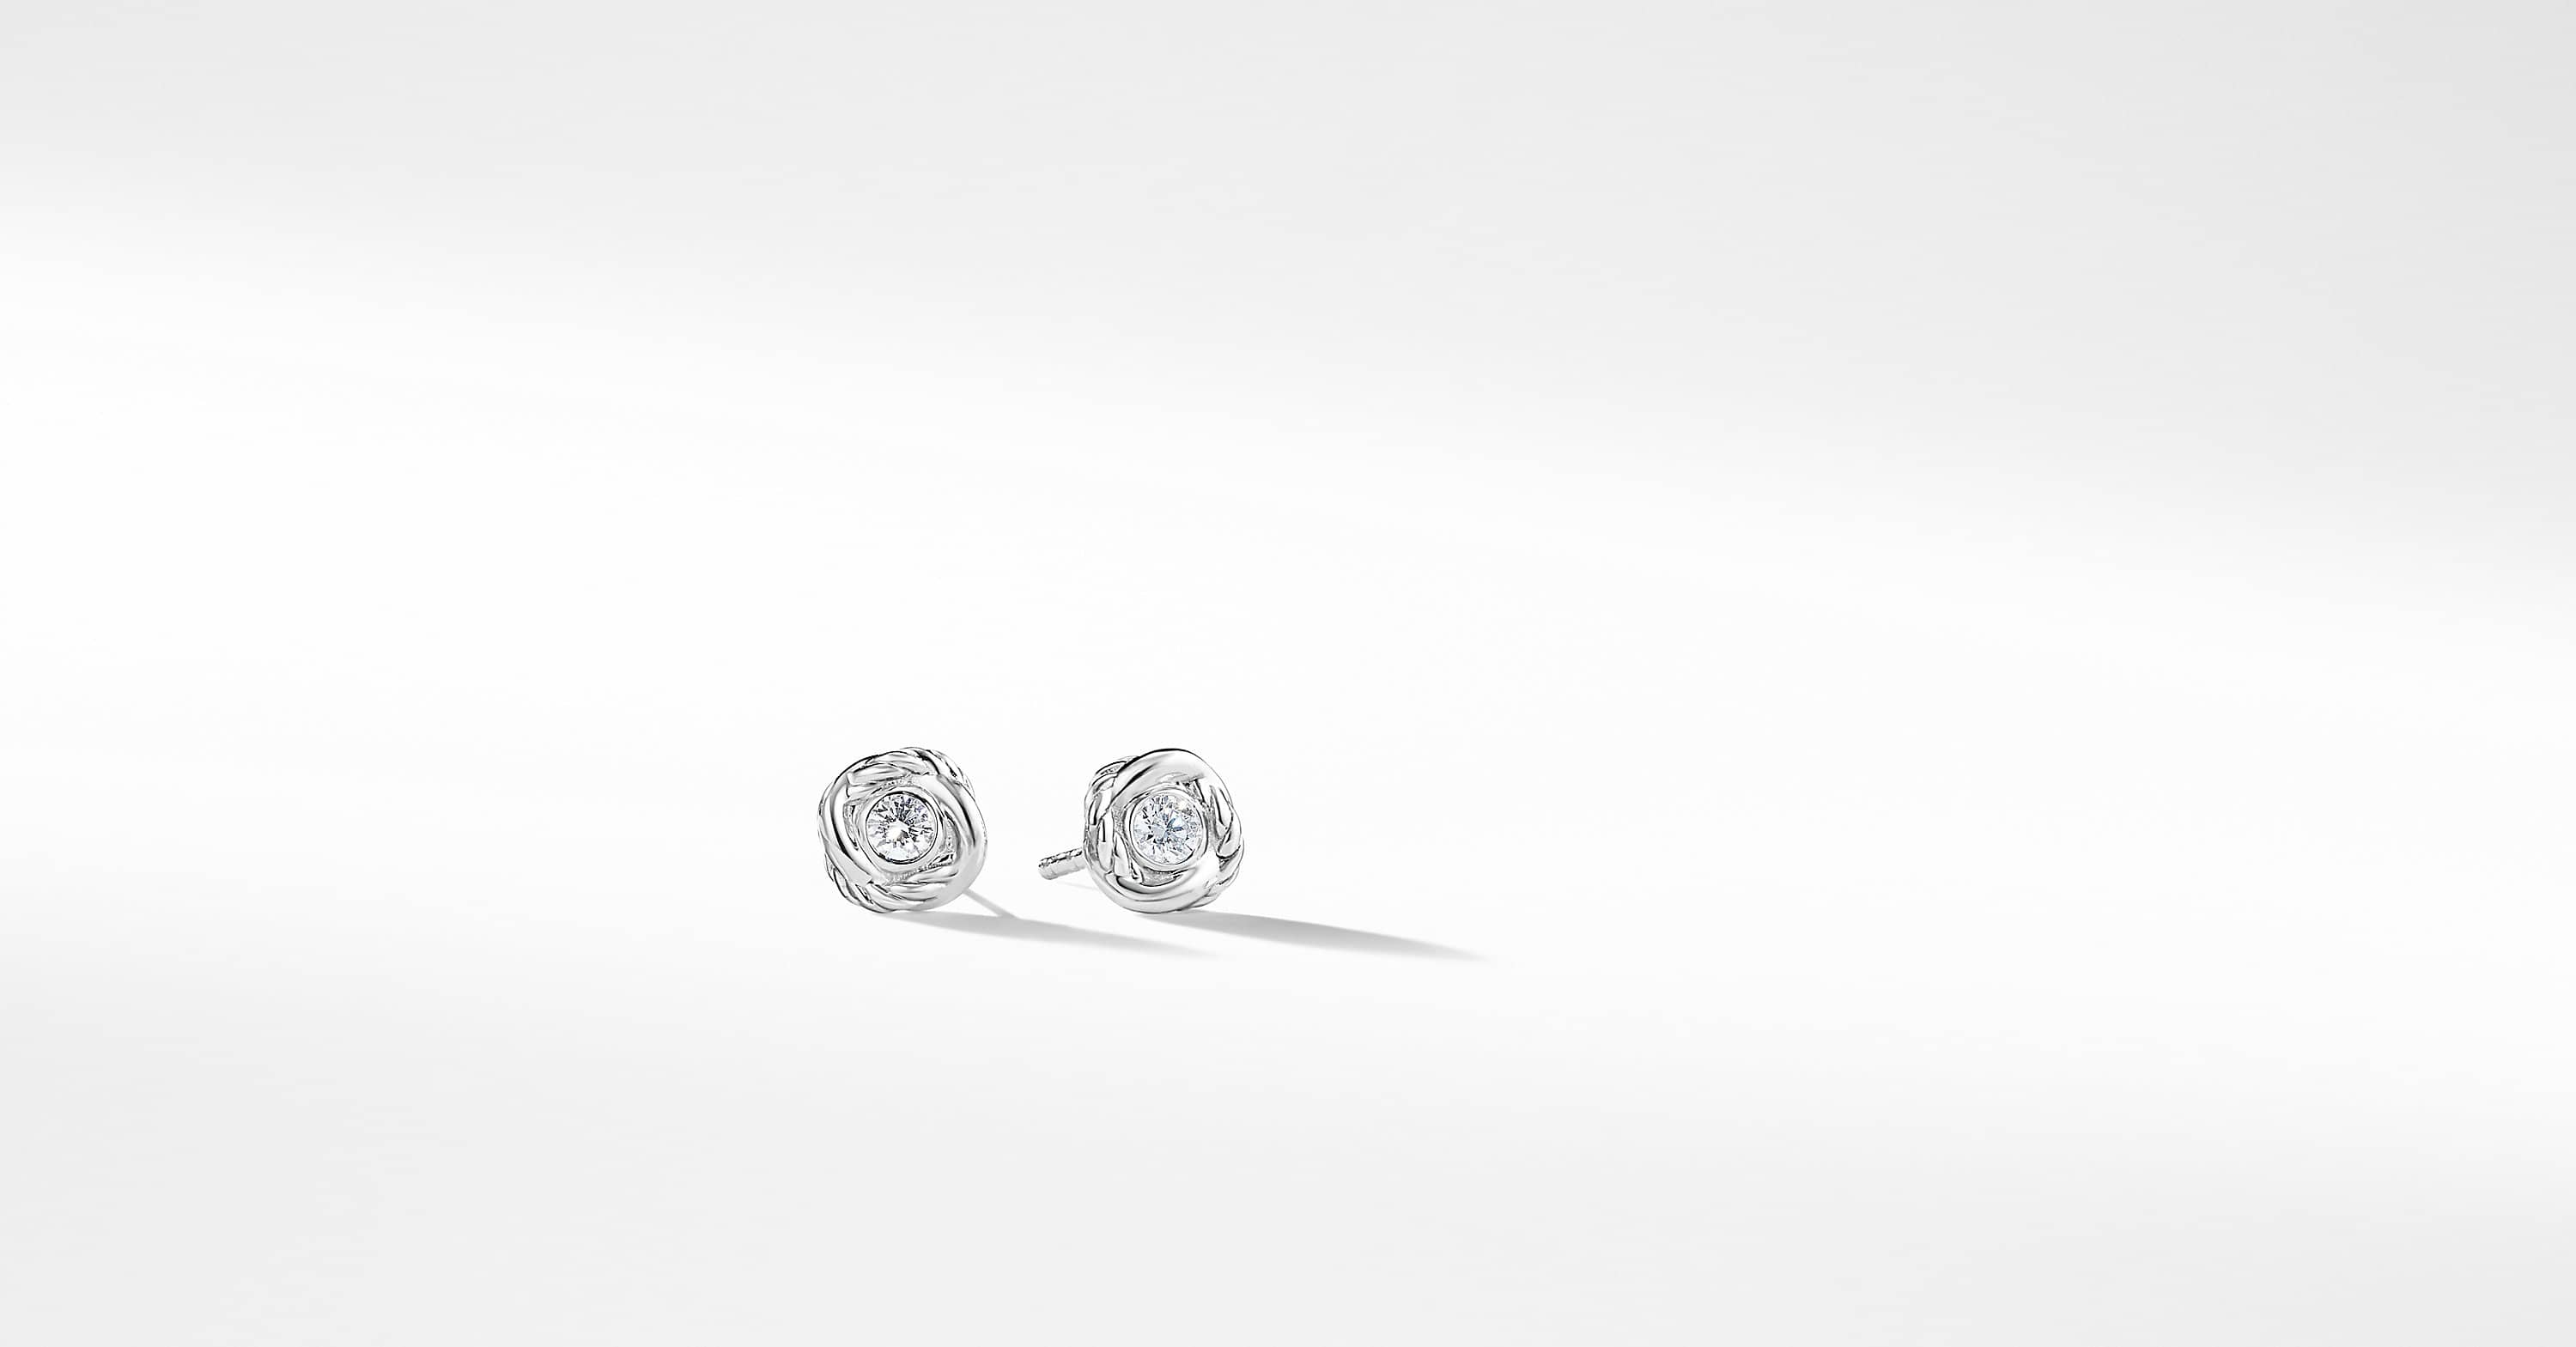 Infinity Earrings with Diamonds in 18K White Gold